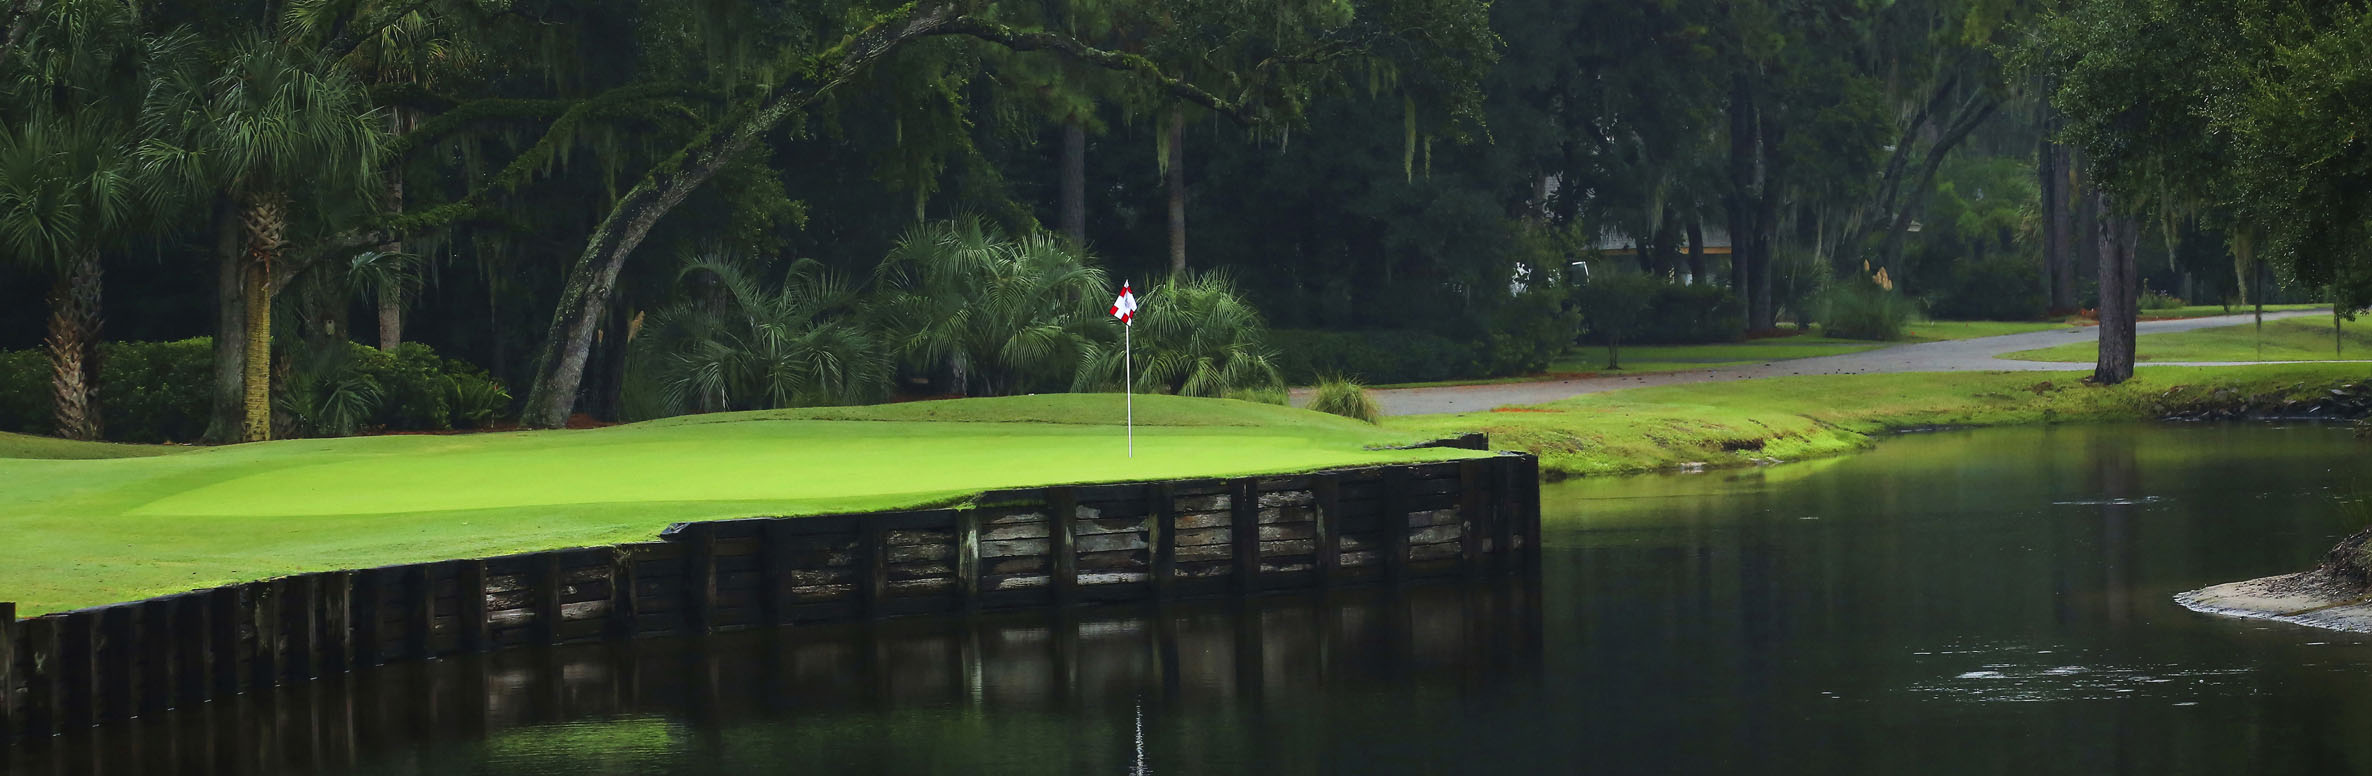 Golf Course Image - Harbour Town Golf Links No. 14